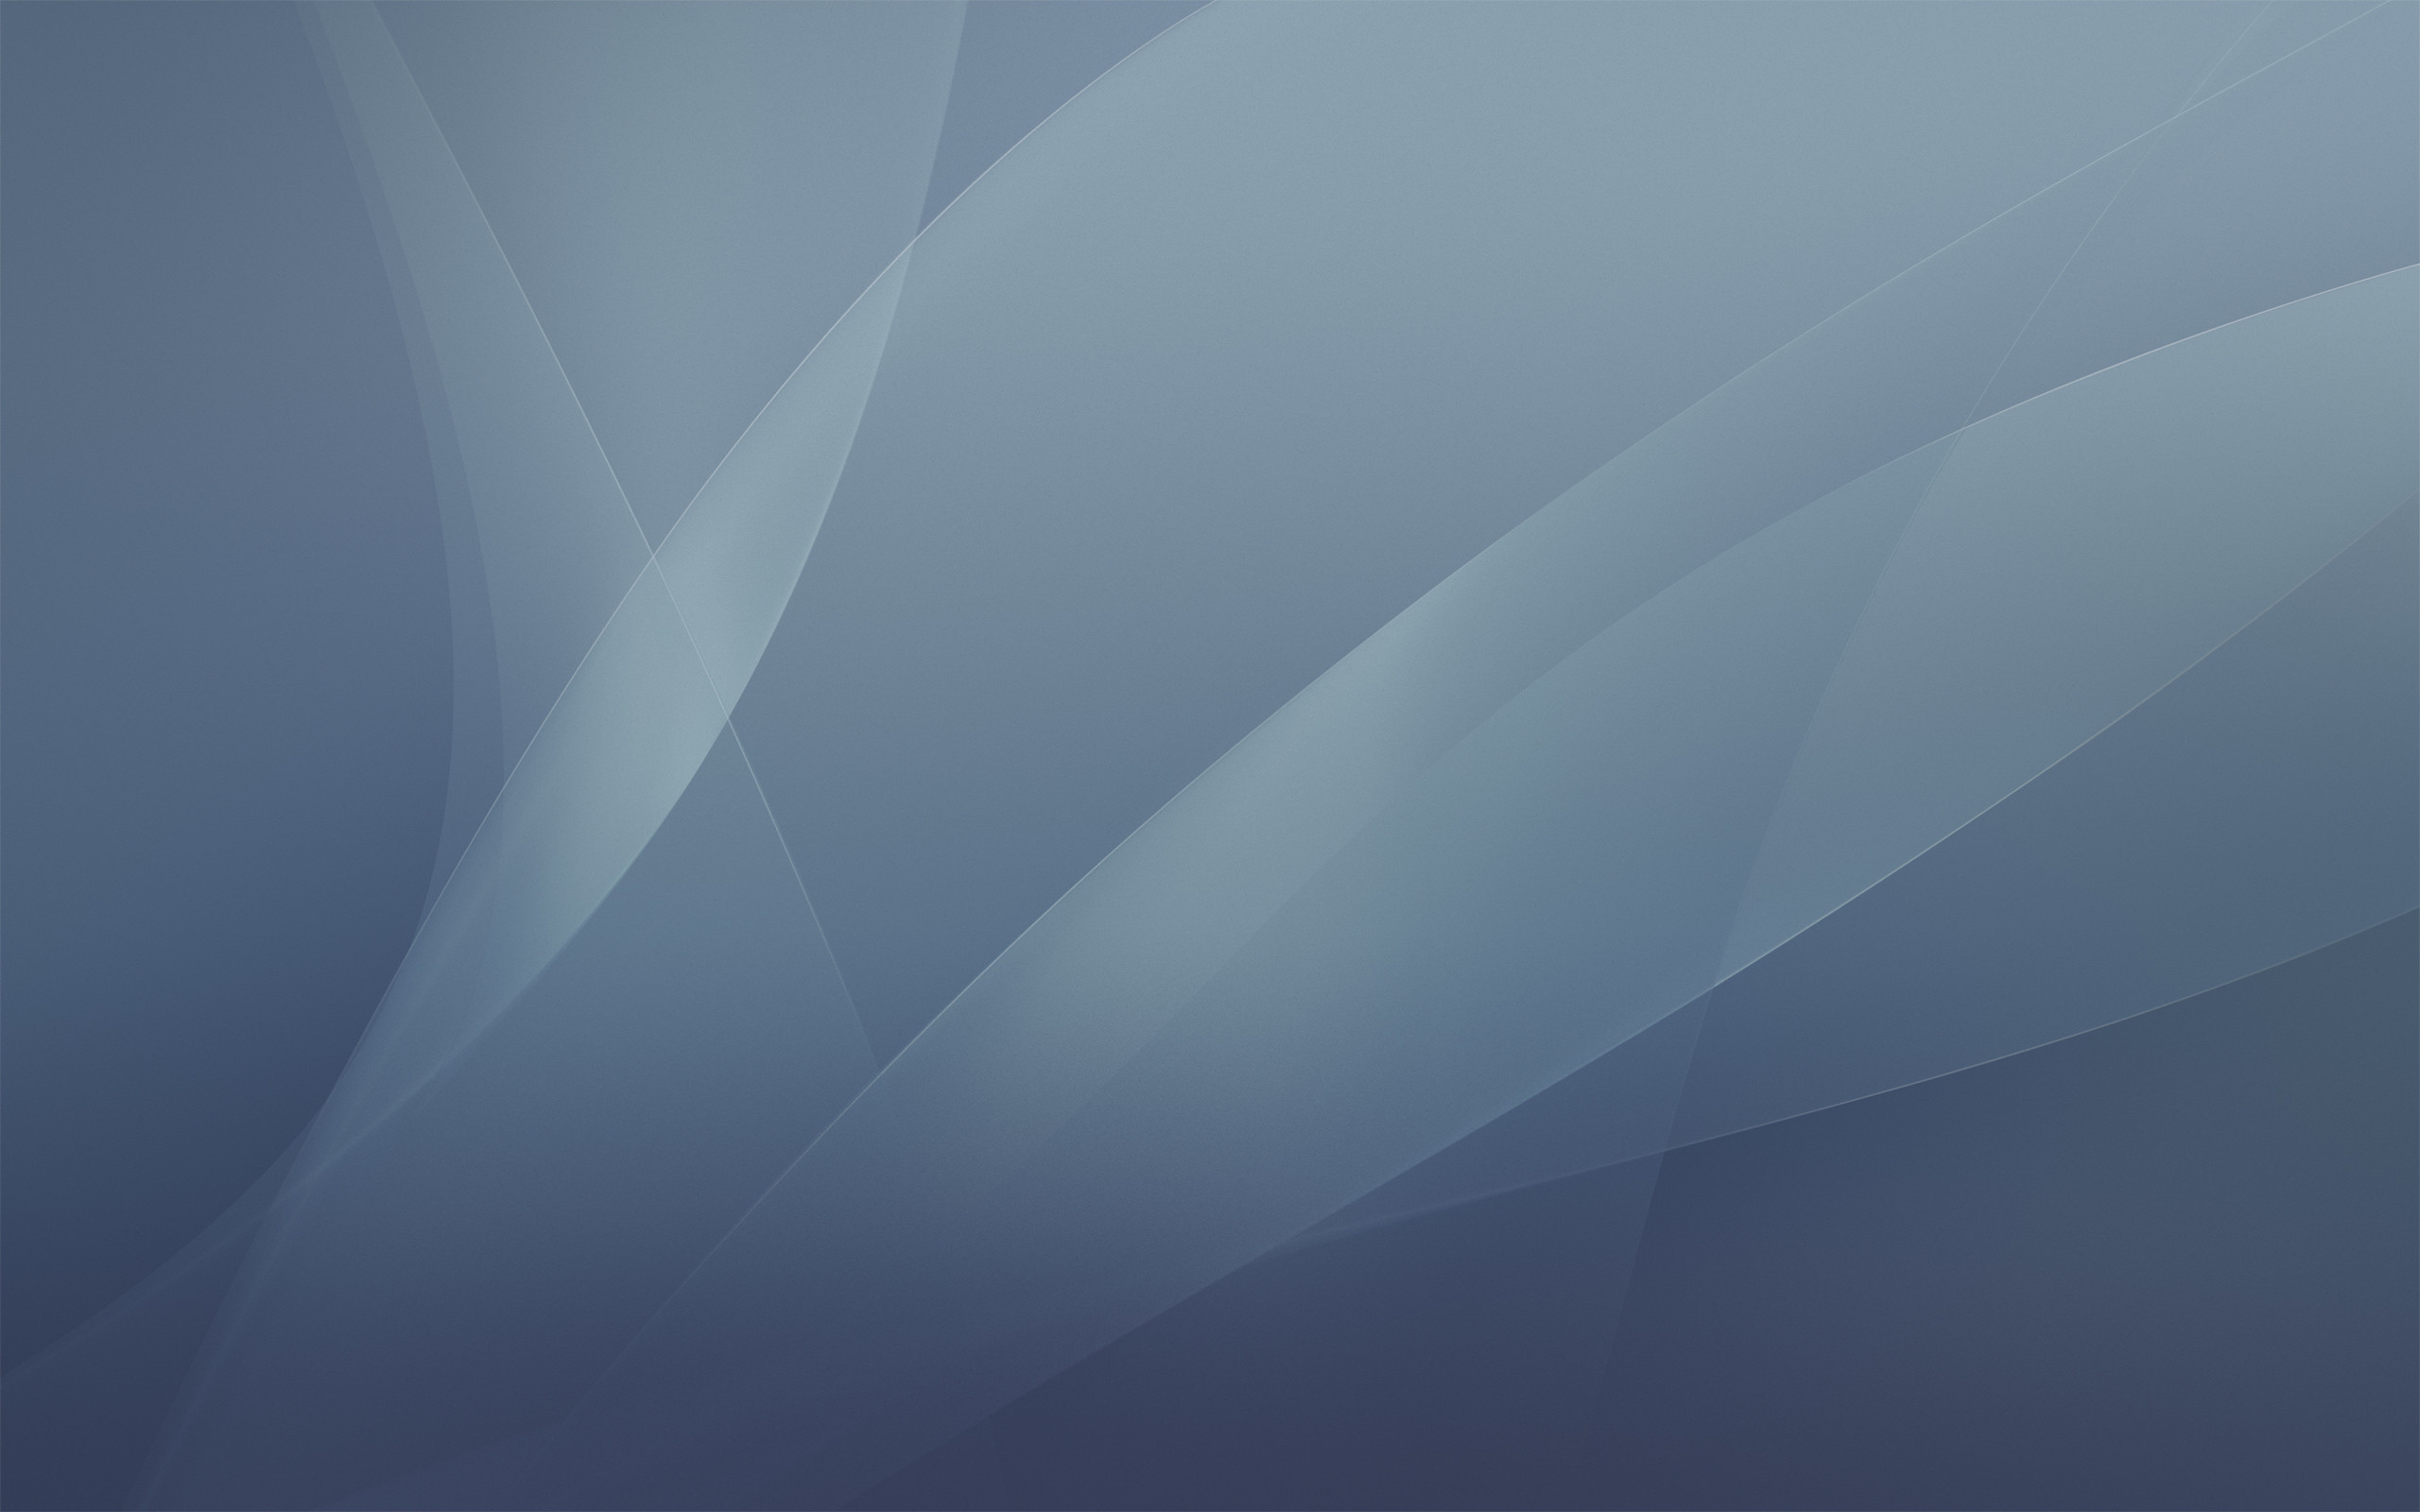 Res: 2560x1600, Get this package - Get more Mac OS wallpapers - Official site of Mac OS.